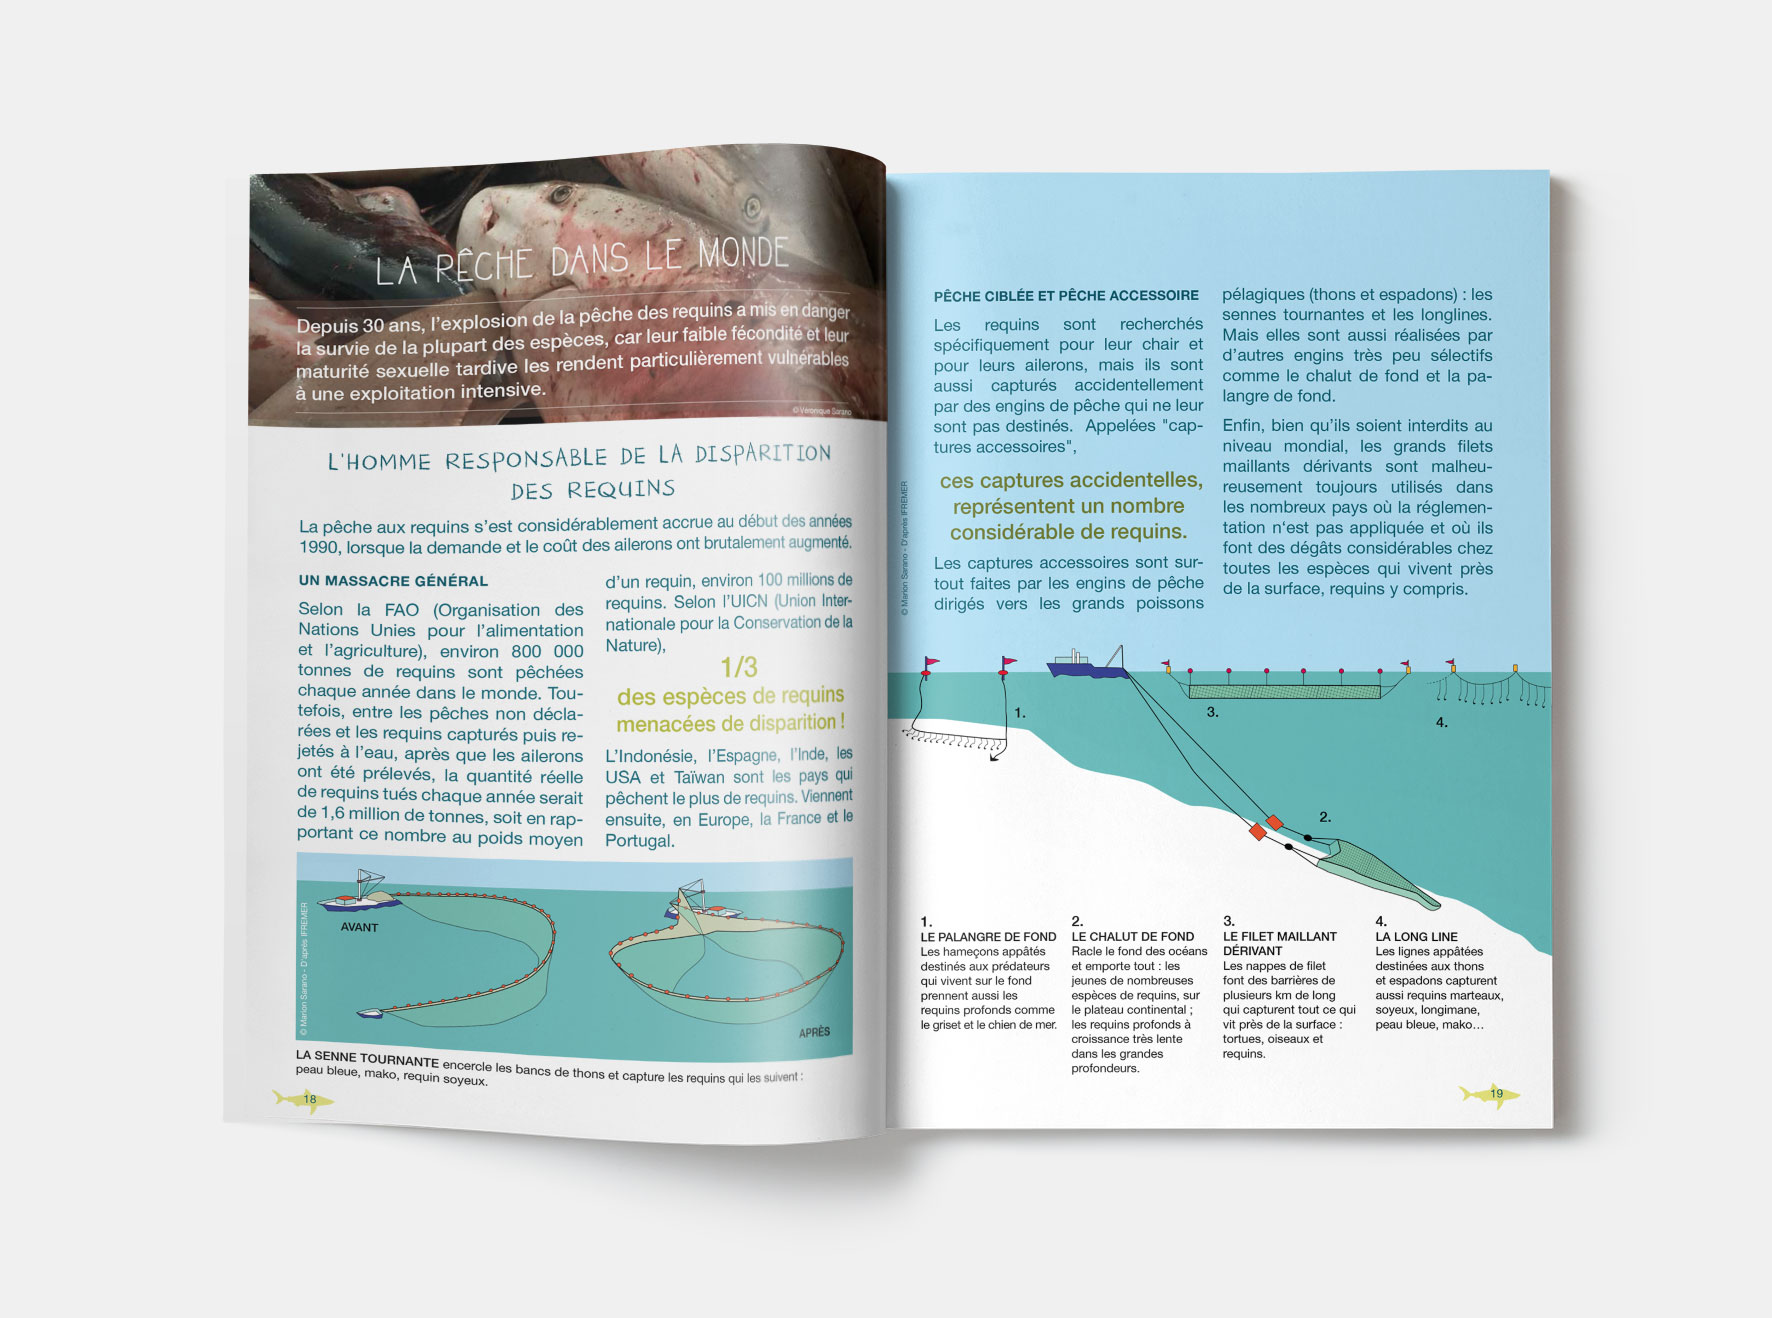 MESit_ASPAS_brochure-Requins_illustration_1